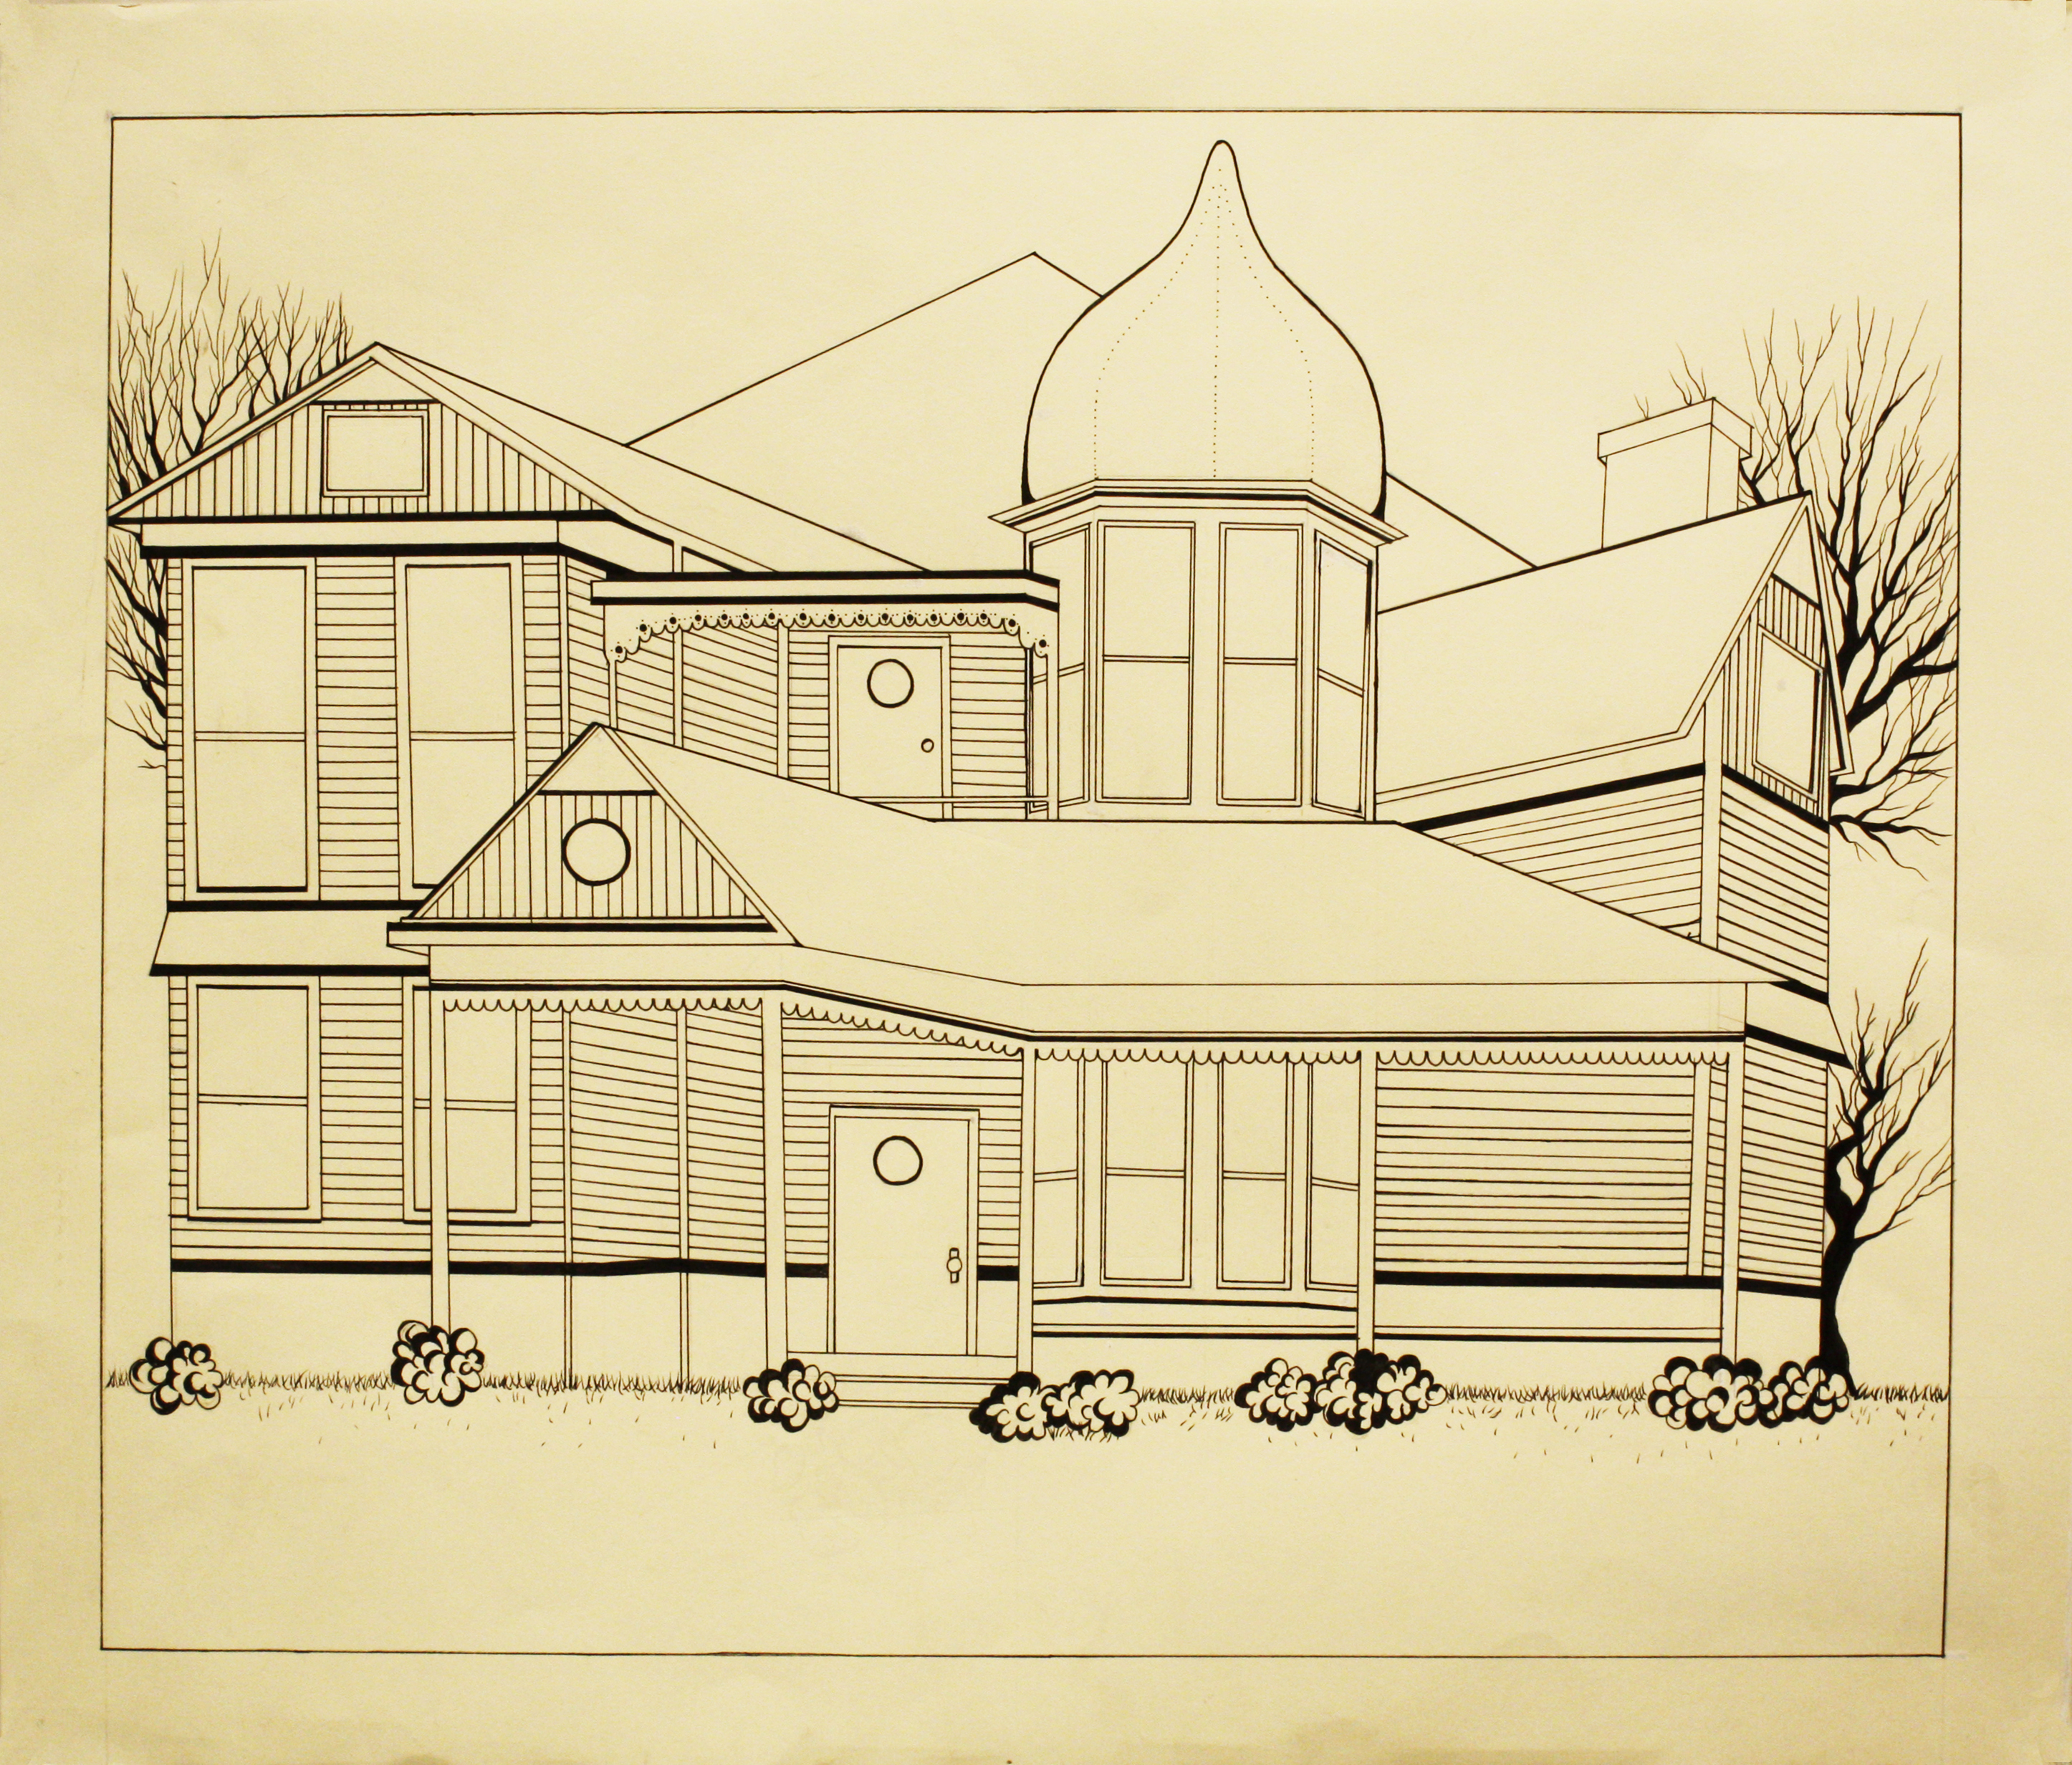 Drawing of a house with mountains in the background.